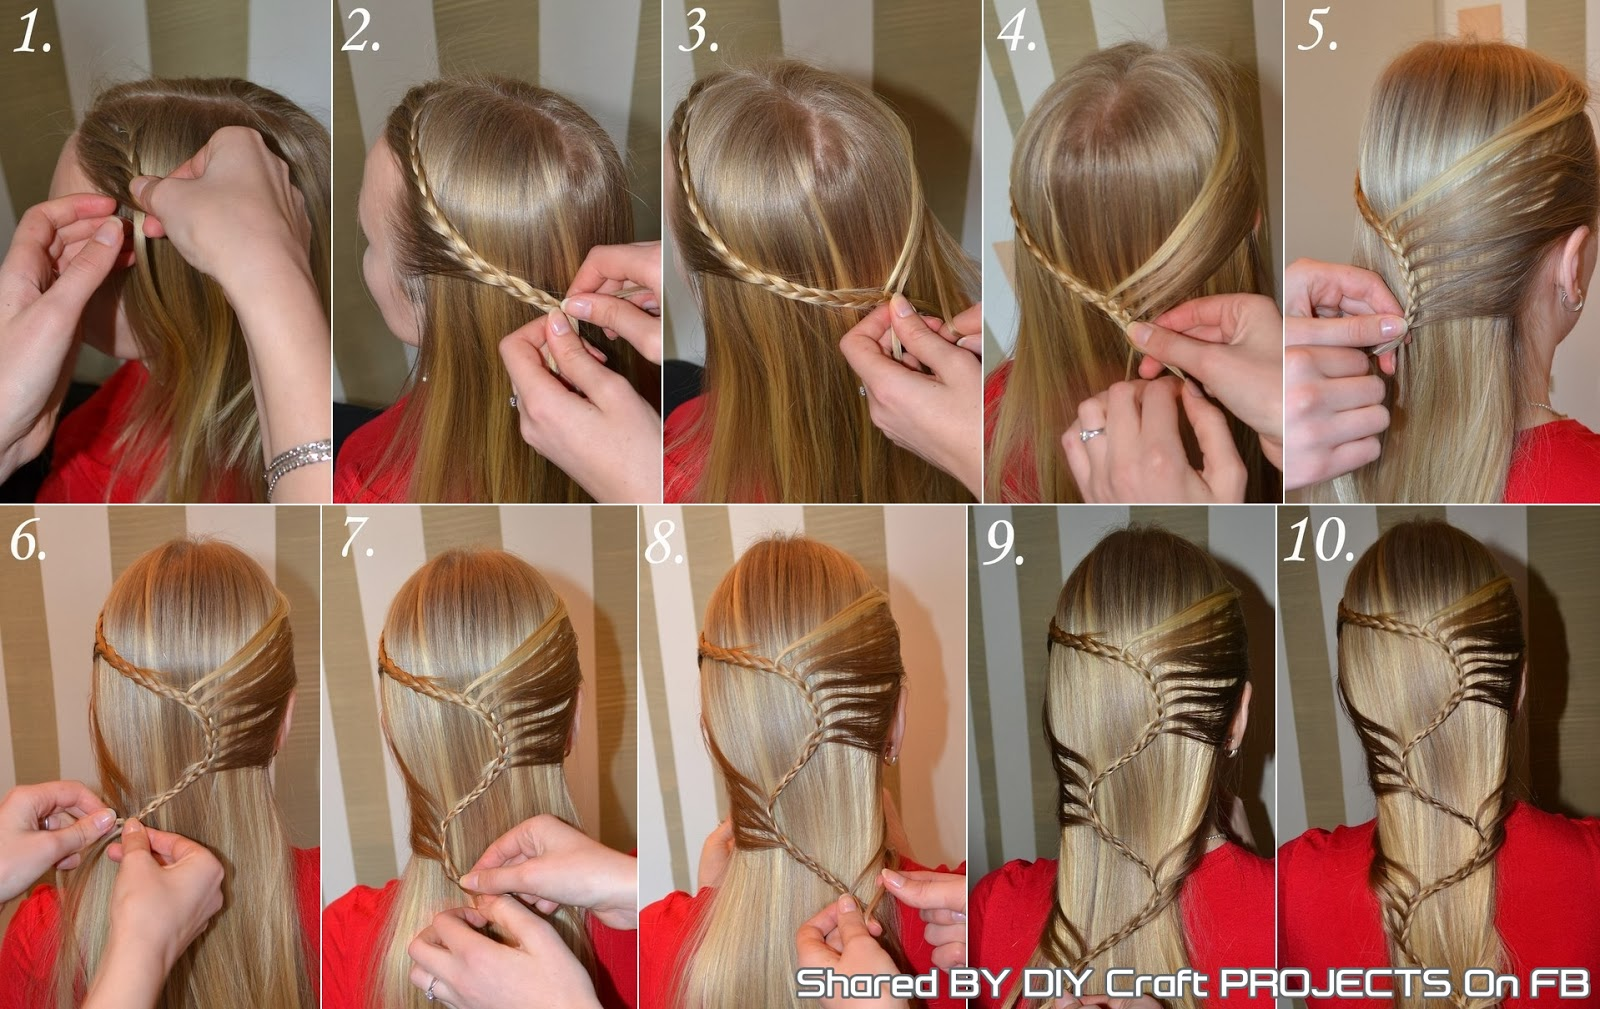 sbraid hairstyle step by step diy craft projects